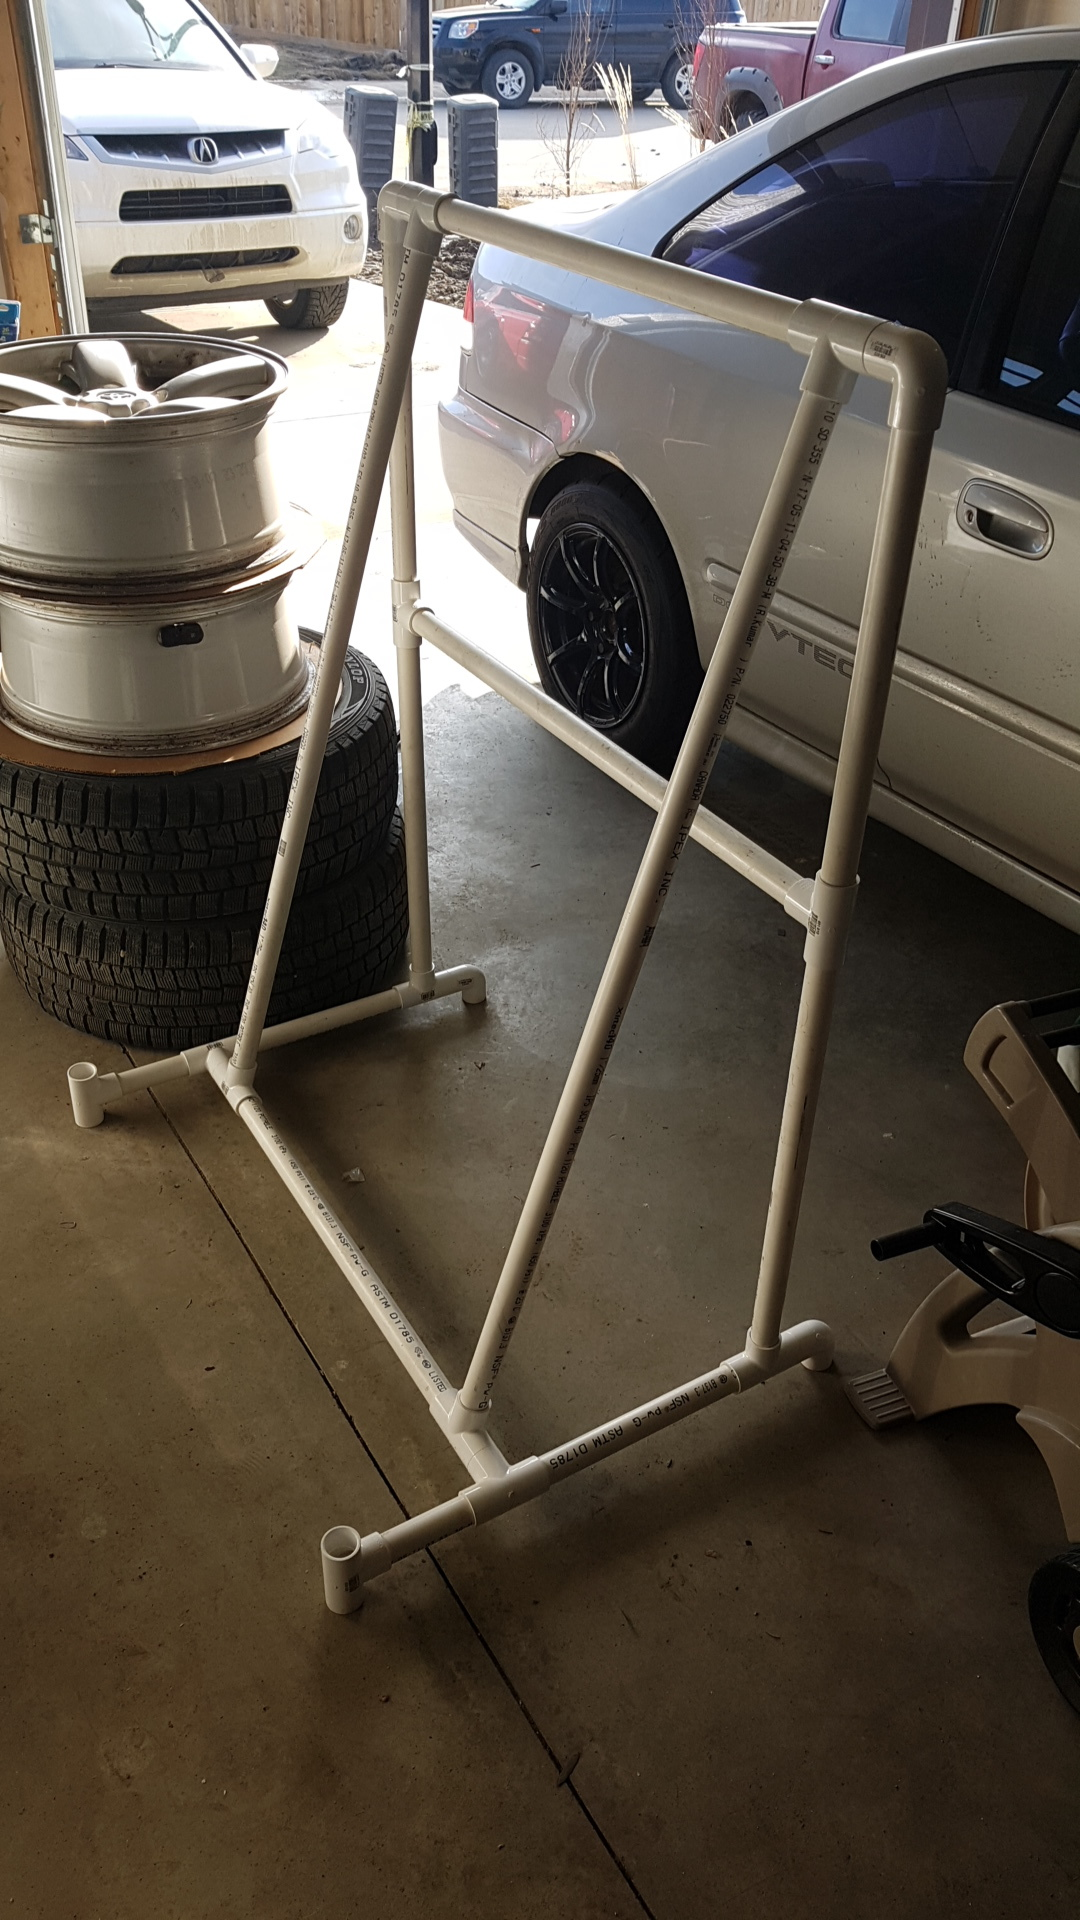 """Honestly love the feeling of an open top roadster during my weekly summer Sunday night drives. This means I needed to store the hardtop. Looked around and found that the """"heavy duty"""" stands can cost upwards of $600!!! Fuck that shit. Found a tutorial and built one myself. PVC pipe cost around $70 and looks pretty good too! The dimensions are based off of plans I found for a miata. Link here:  https:// www.youtube.com /watch?v=nuyyHr1JaDA.  Highly recommend this as it took me maybe an hour to build."""